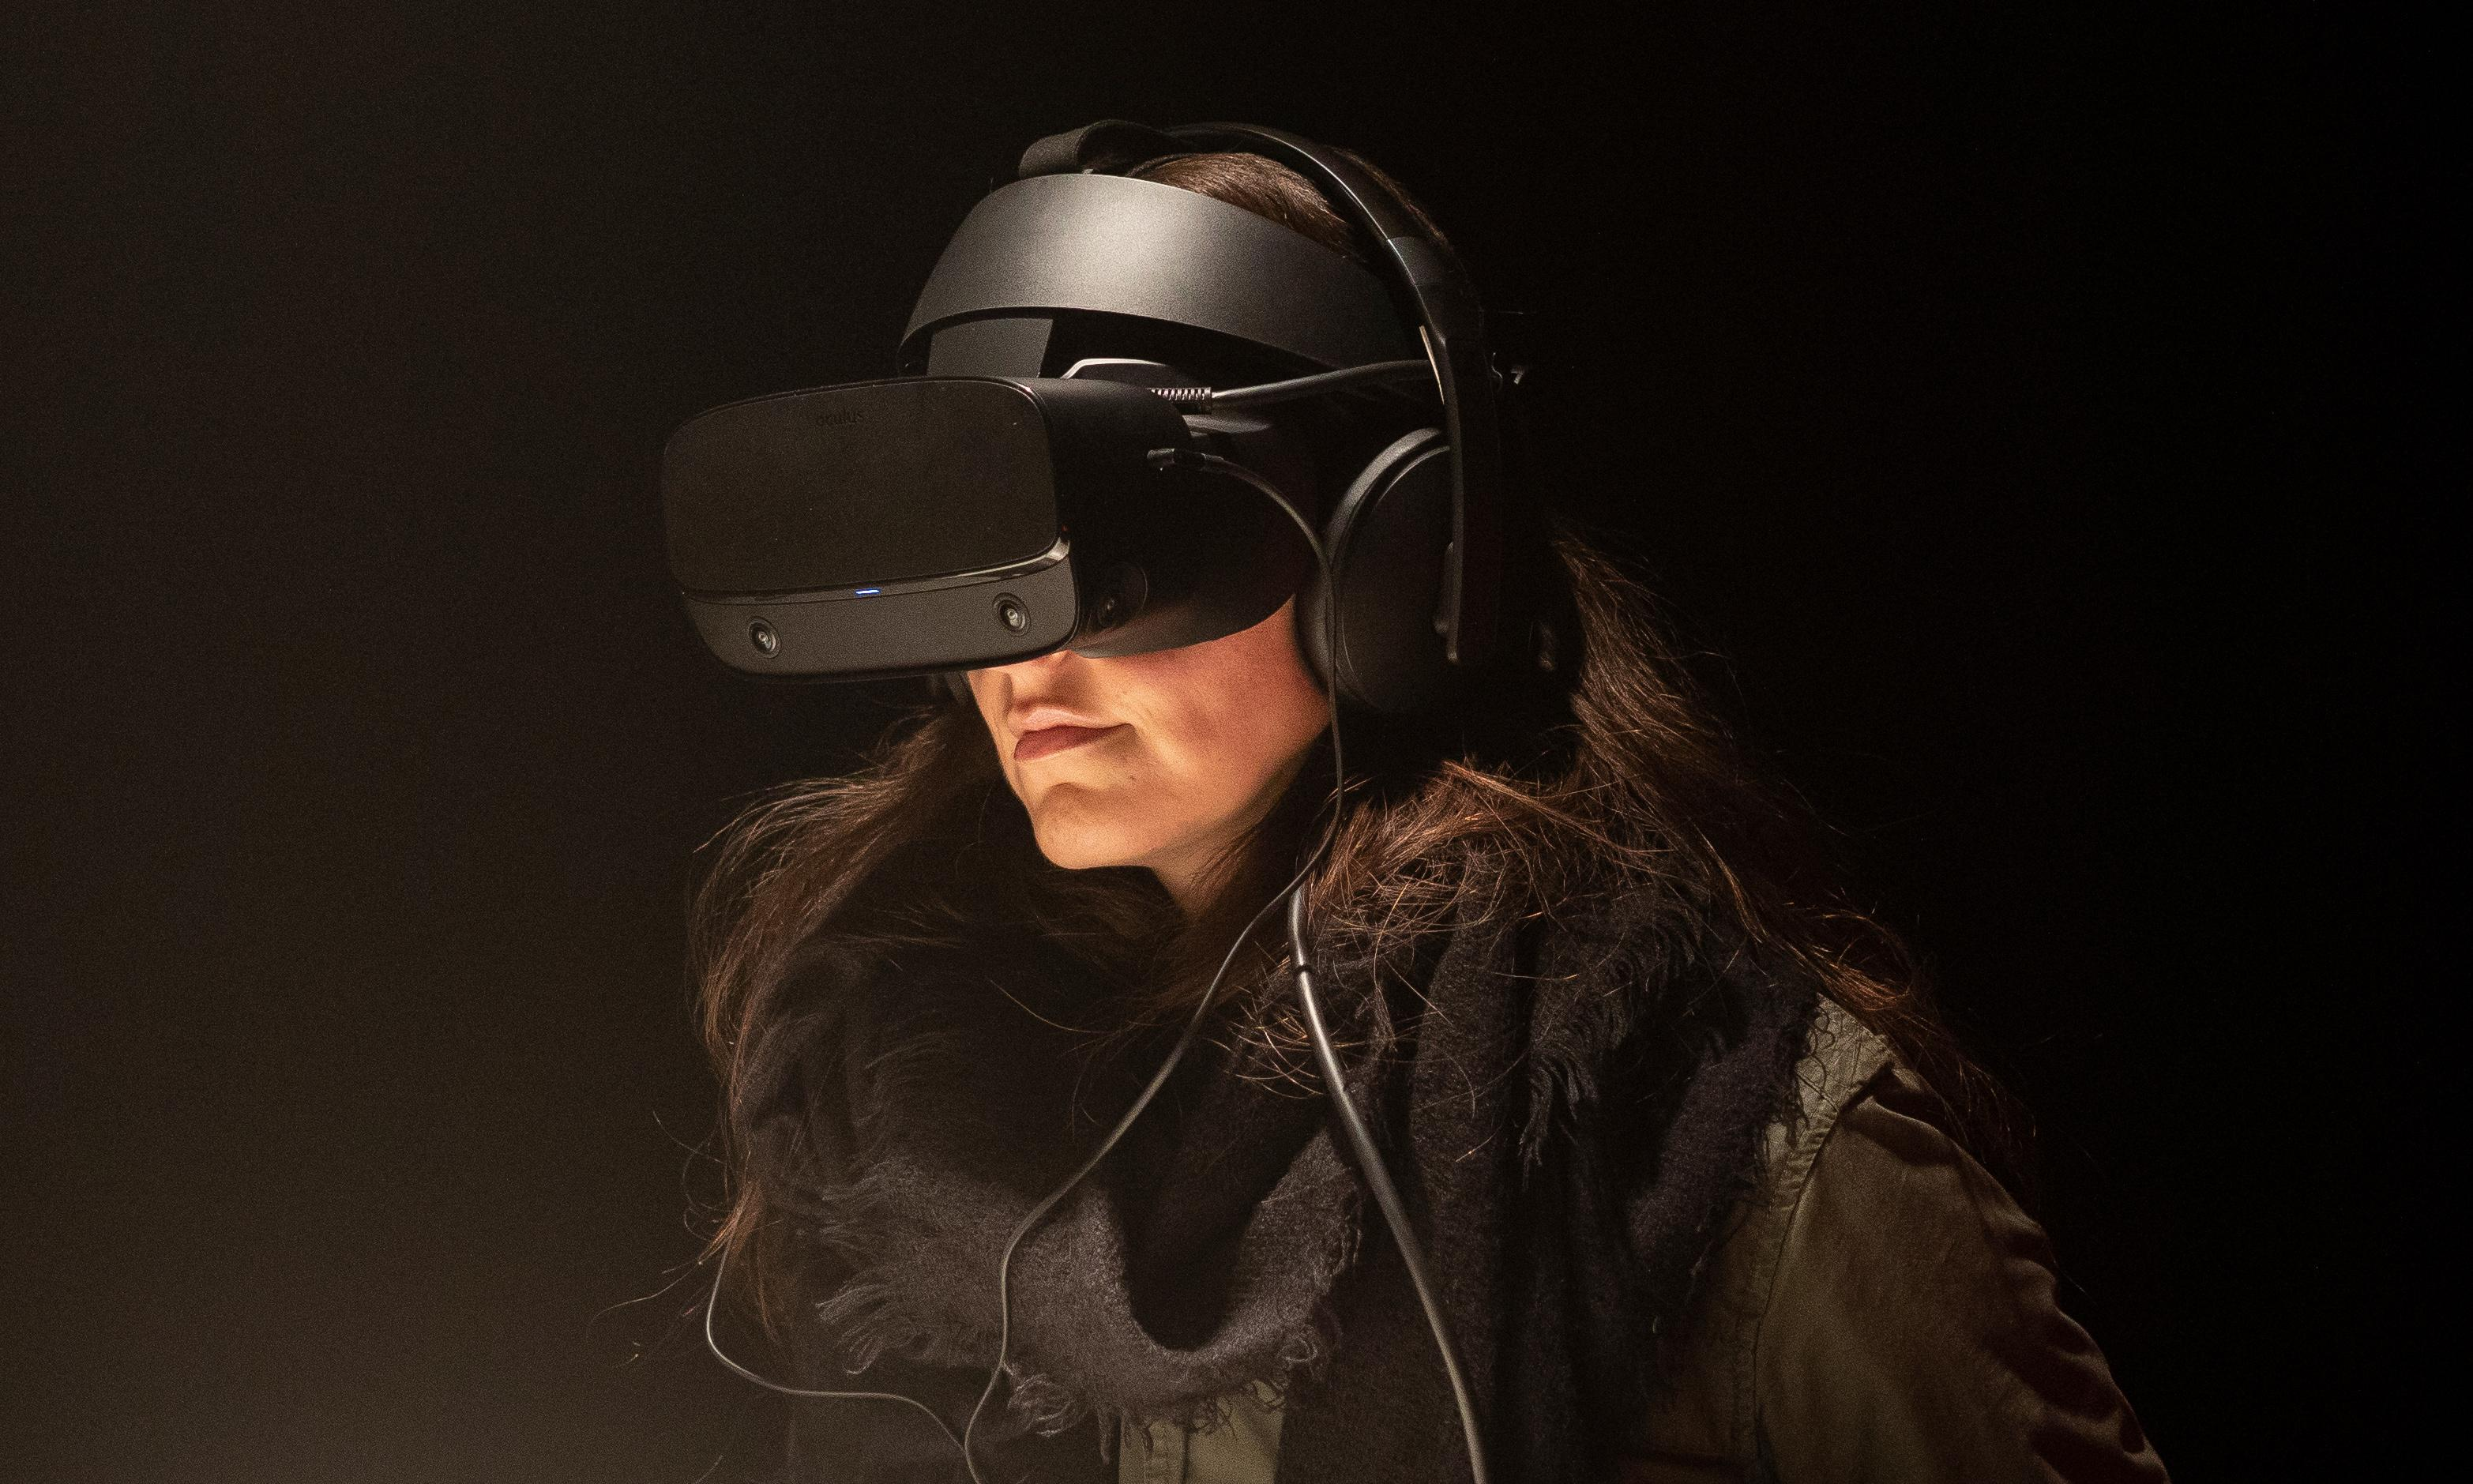 'Real' violence: coming to grips with the ethics of virtual reality brutality